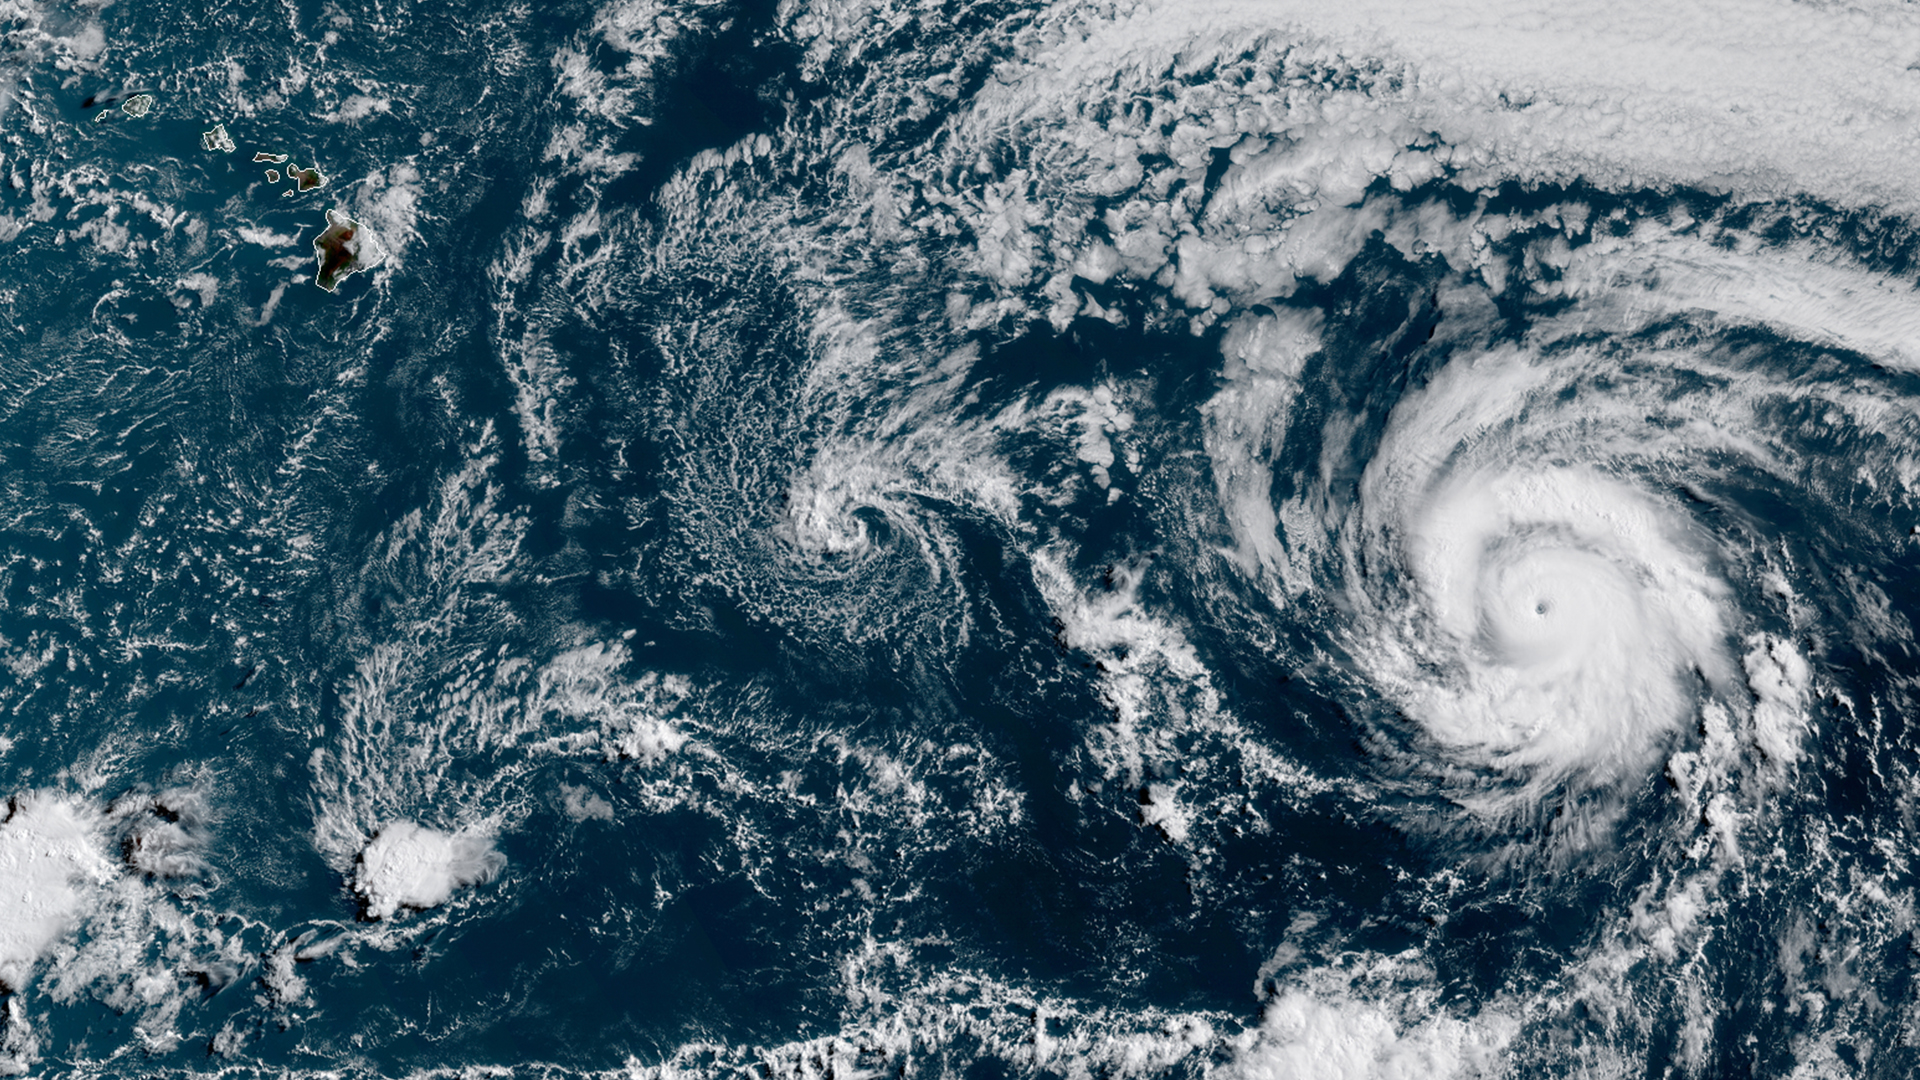 Satellite imagery shows Hurricane Douglas as a Category 3 storm southeast of Hawaii on June 23, 2020. (GOES-17/NOAA)